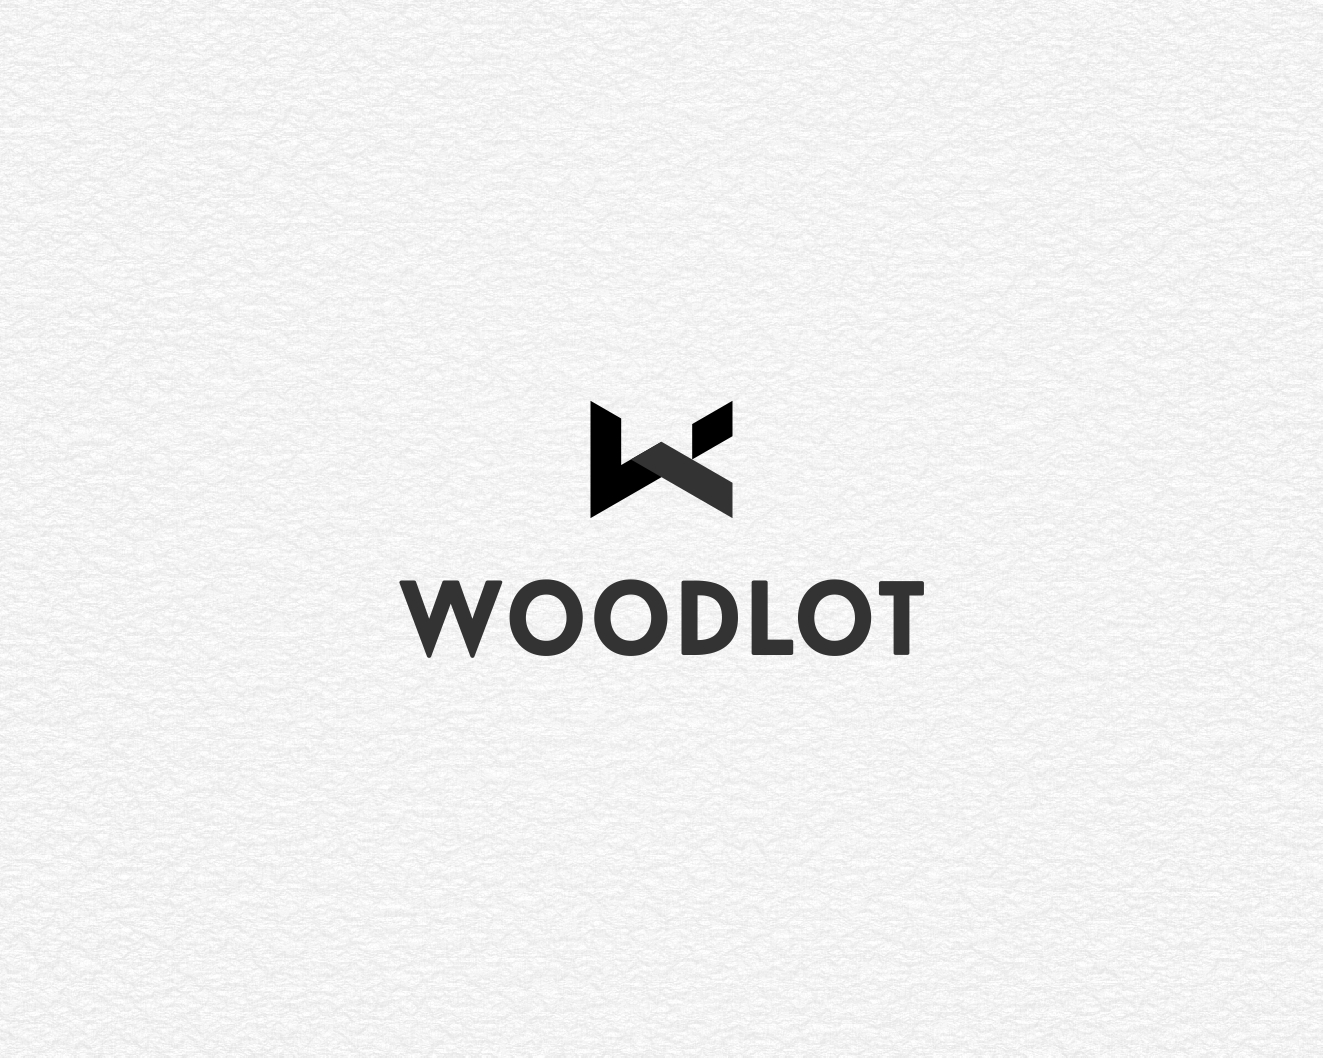 Logo Design by Rares.Andrei - Entry No. 63 in the Logo Design Contest Fun Logo Design for woodlot.